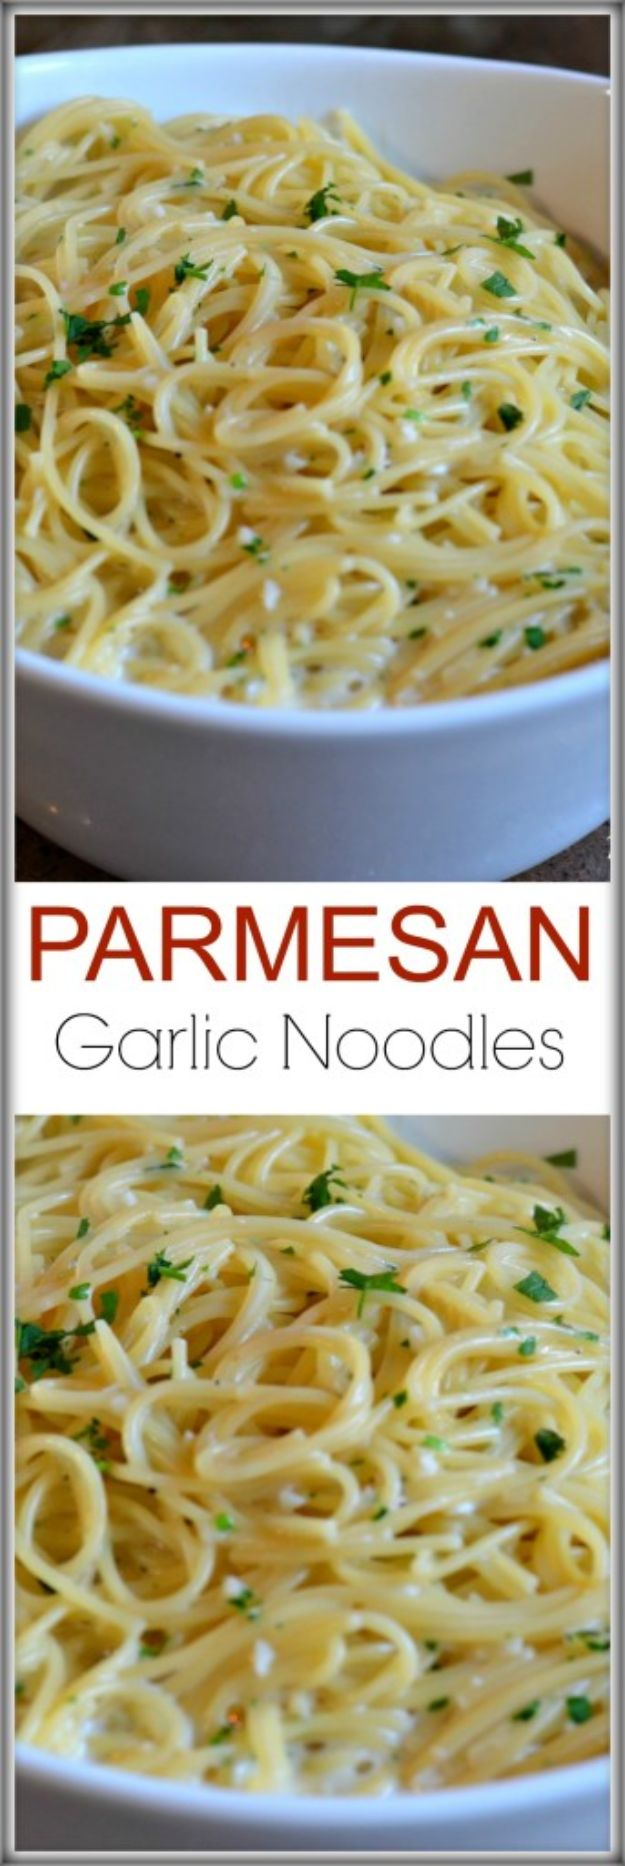 Best Recipes for the Cheese Lover - Parmesan Garlic Noodles - Easy Recipe Ideas With Cheese - Homemade Appetizers, Dips, Dinners, Snacks, Pasta Dishes, Healthy Lunches and Soups Made With Your Favorite Cheeses - Ricotta, Cheddar, Swiss, Parmesan, Goat Chevre, Mozzarella and Feta Ideas - Grilled, Healthy, Vegan and Vegetarian #cheeserecipes #recipes #recipeideas #cheese #cheeserecipe